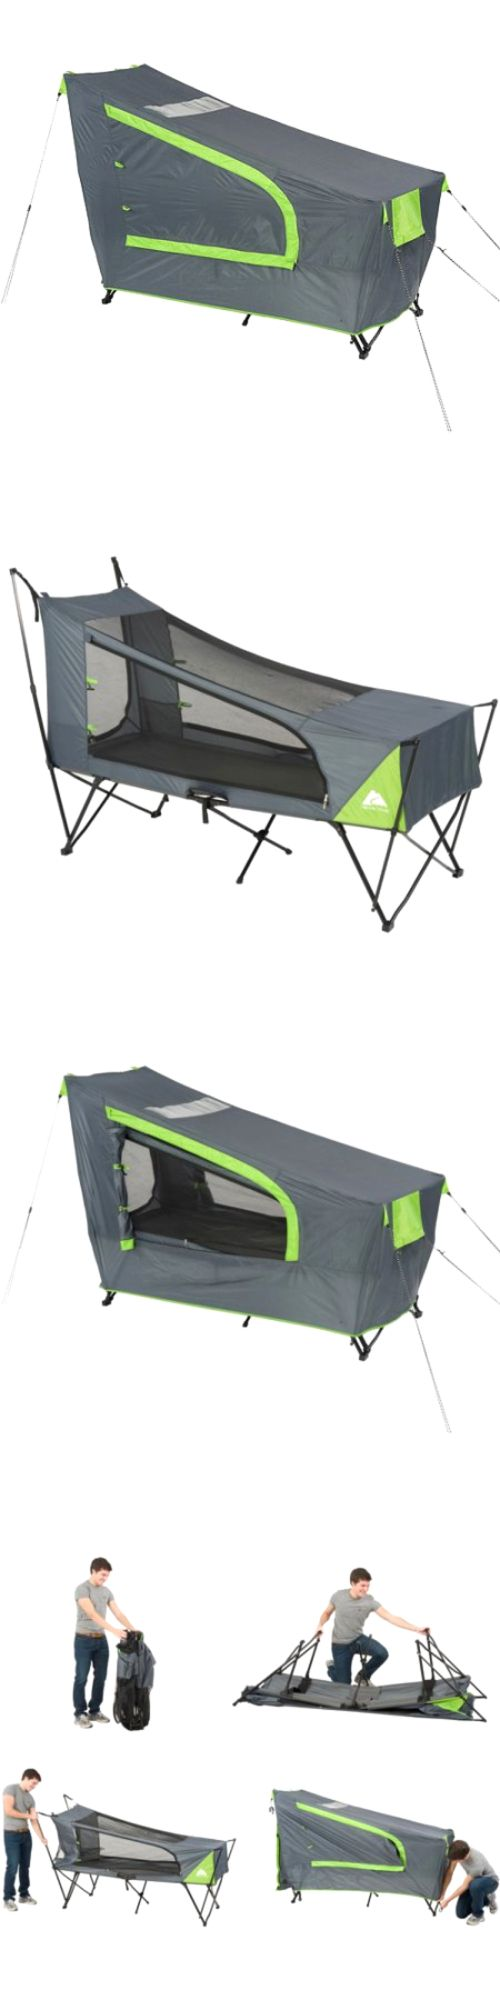 Tents 179010: Ozark Trail Instant Tent Cot With Rainfly, Sleeps 1 -> BUY IT NOW ONLY: $90.6 on eBay!